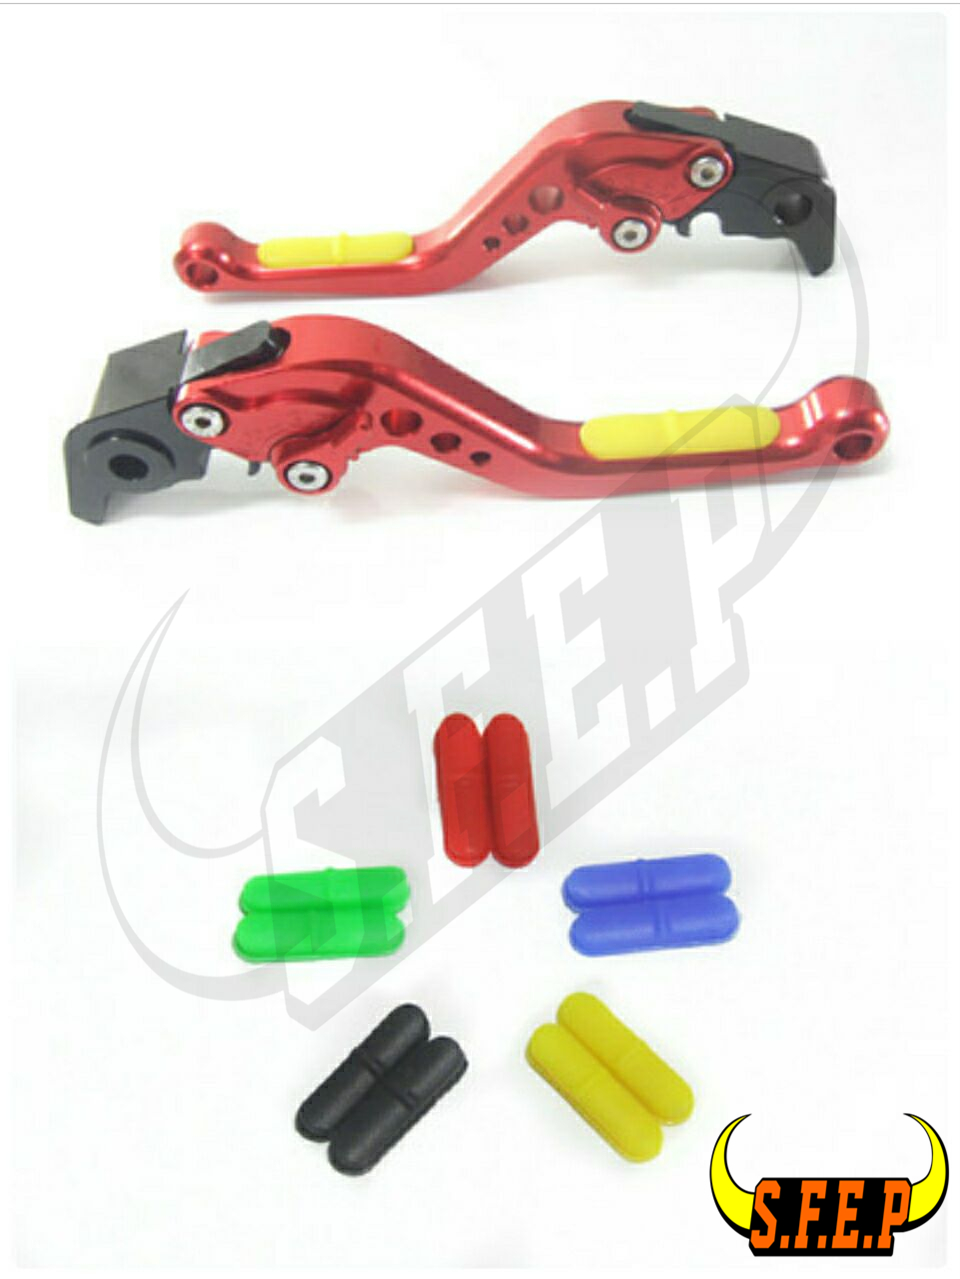 CNC Adjustable Motorcycle Brake and Clutch Levers with Anti-Slip For Kawasaki VERSYS 1000 2015-2018